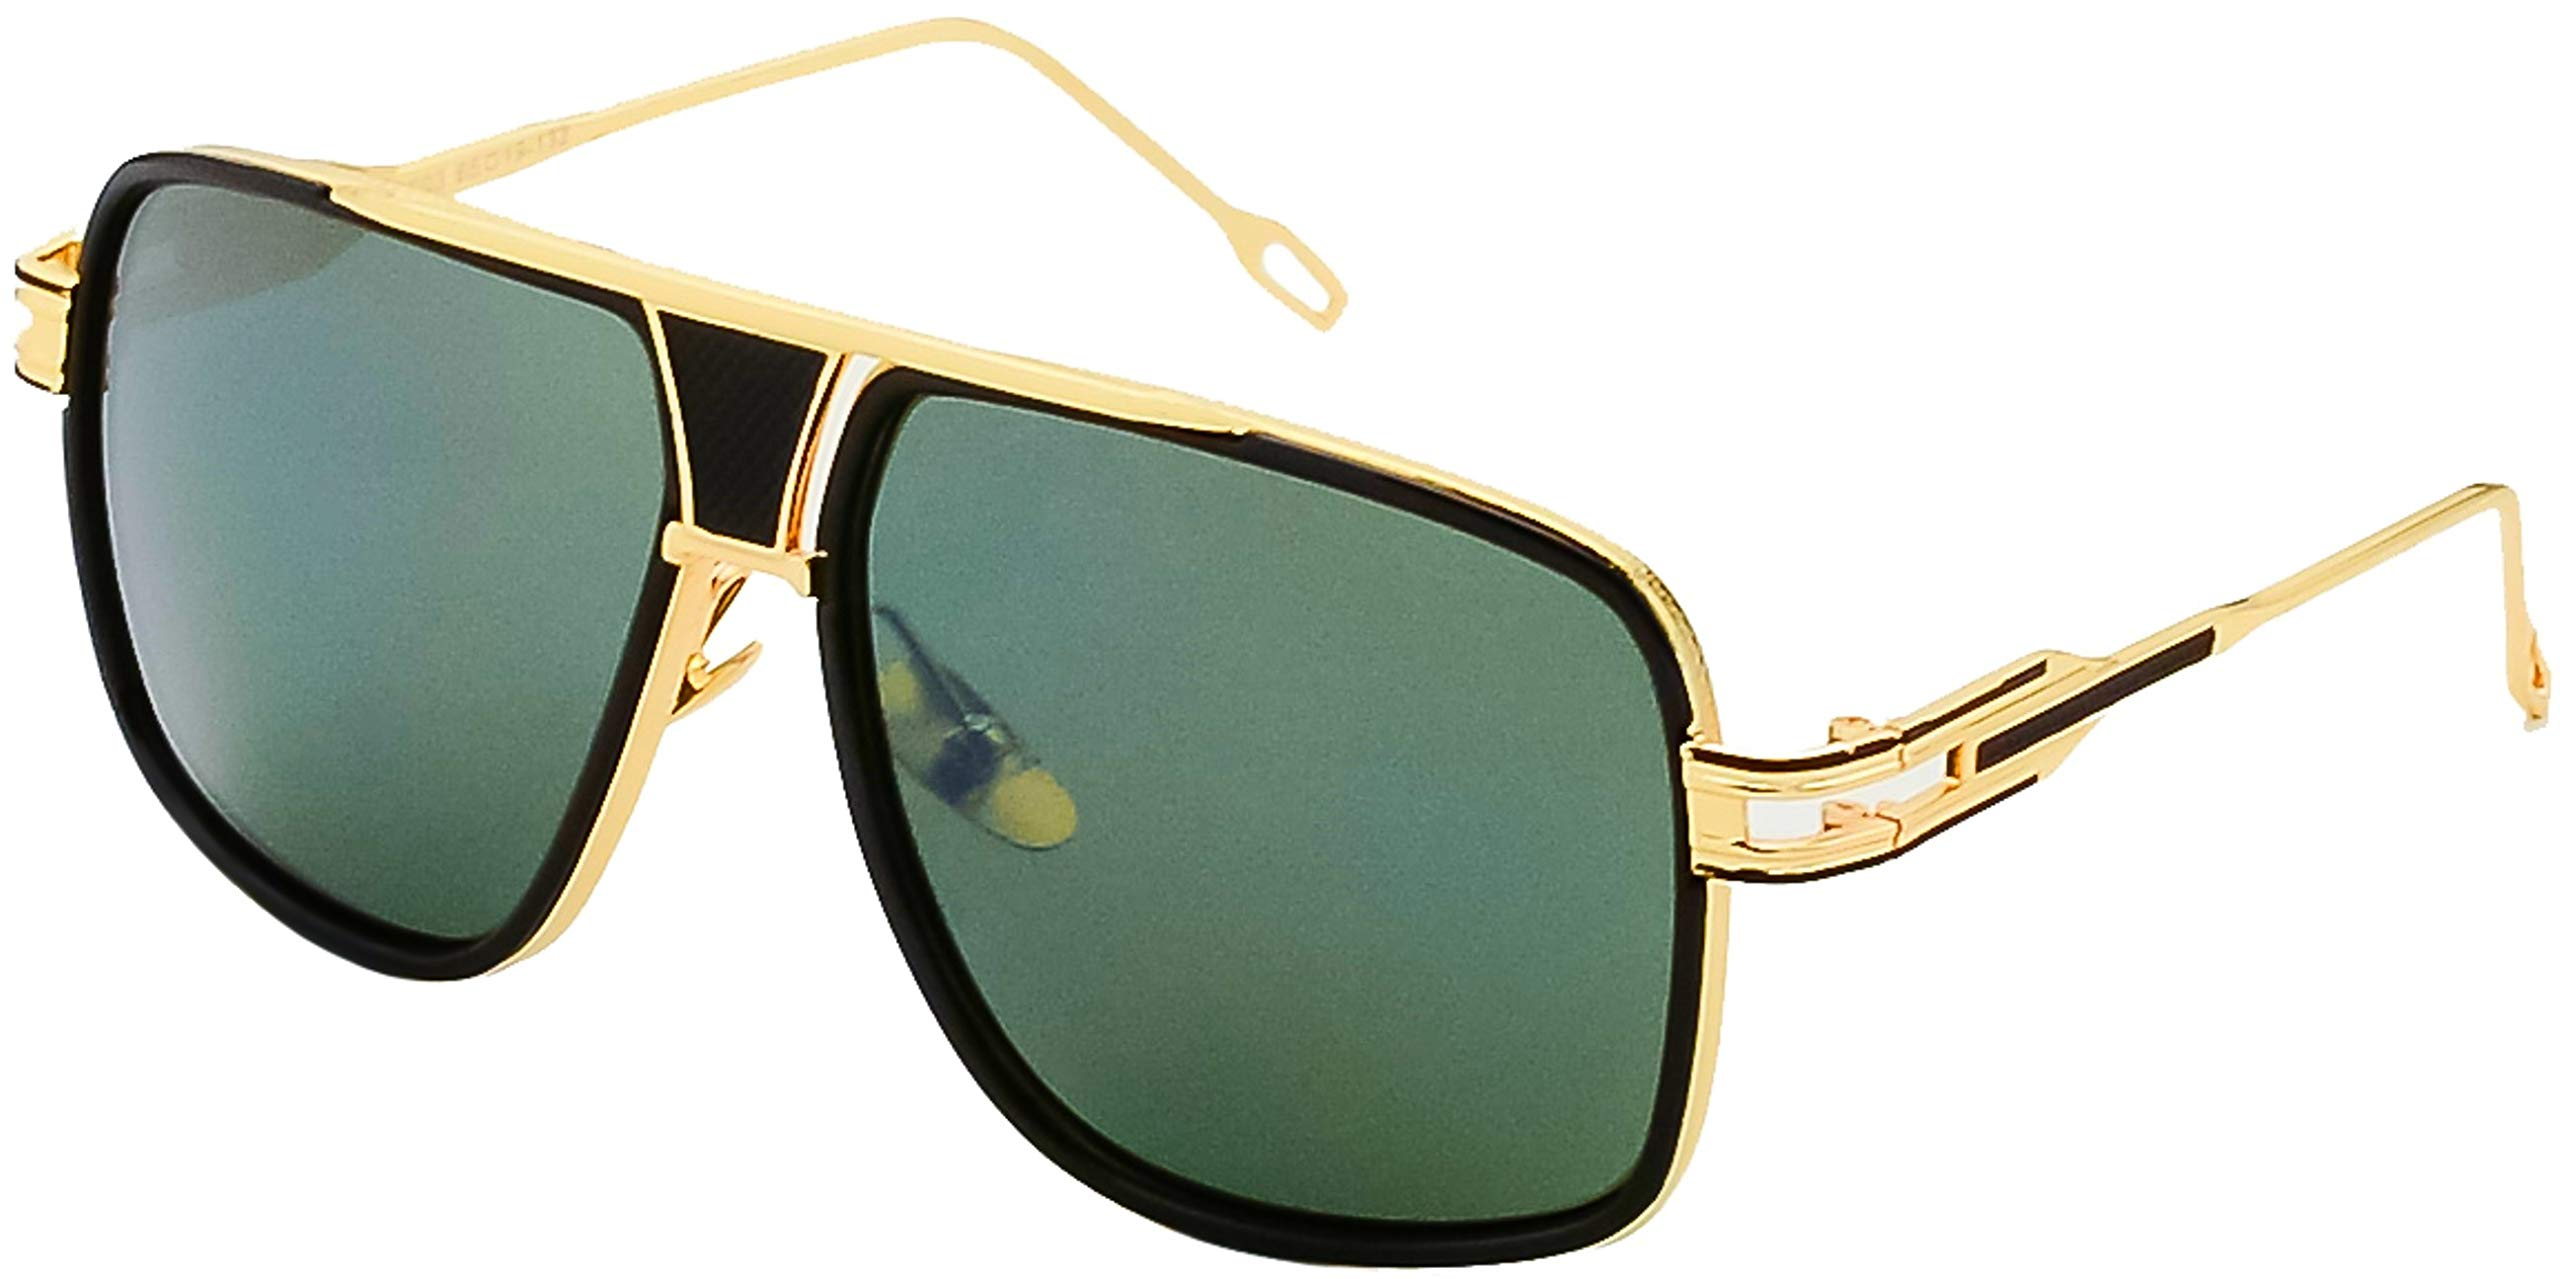 Square Sunglasses for Men Gold and Black Frame Gold Nose Pads with Green Lens by Stylle